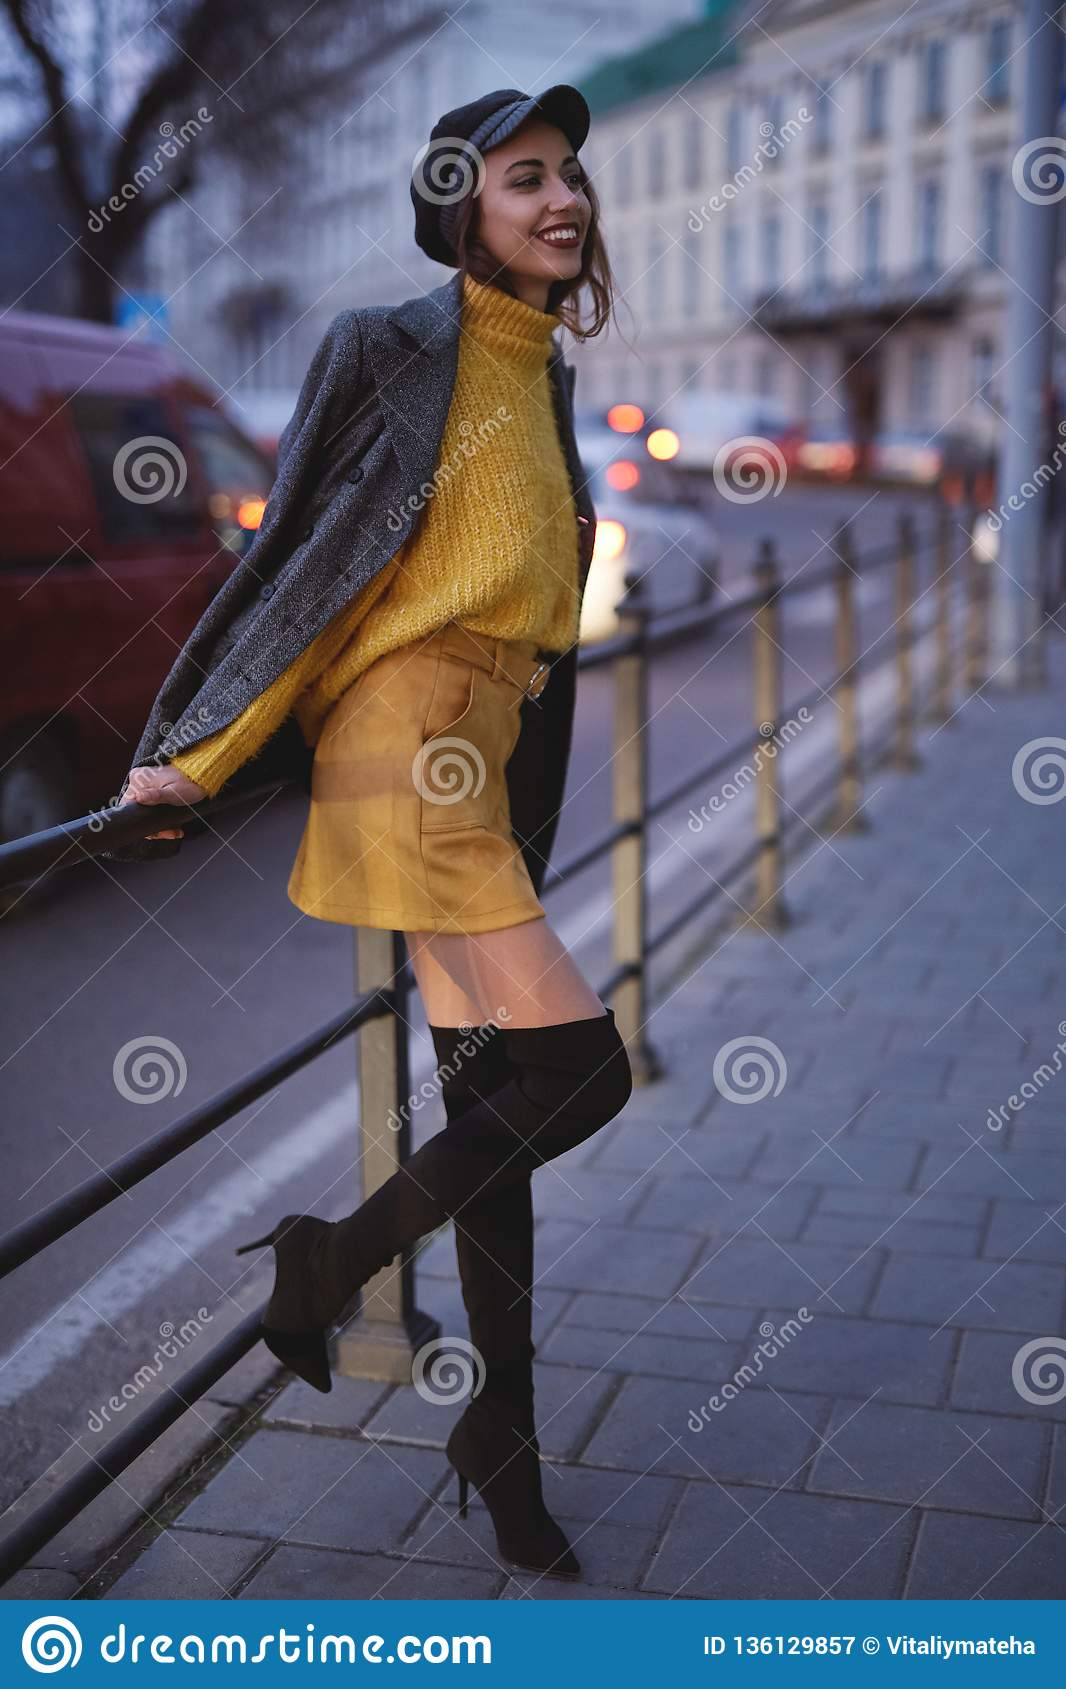 Beautiful fashionable woman in bright yellow sweater and skirt walking and posing outdoors